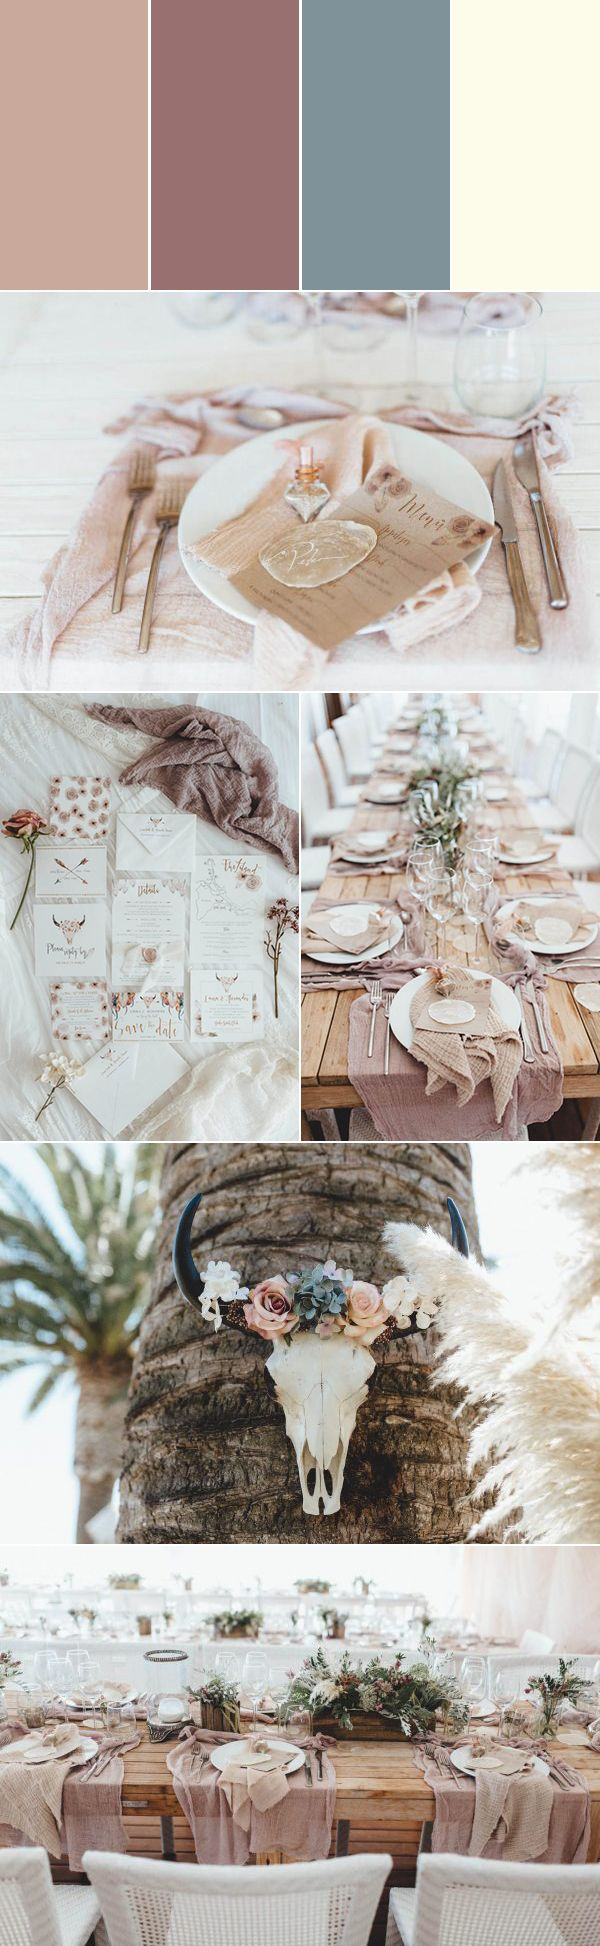 Taupe, mauve, sage, shell color palette for an ethereal wedding | photos by Kreativ Wedding